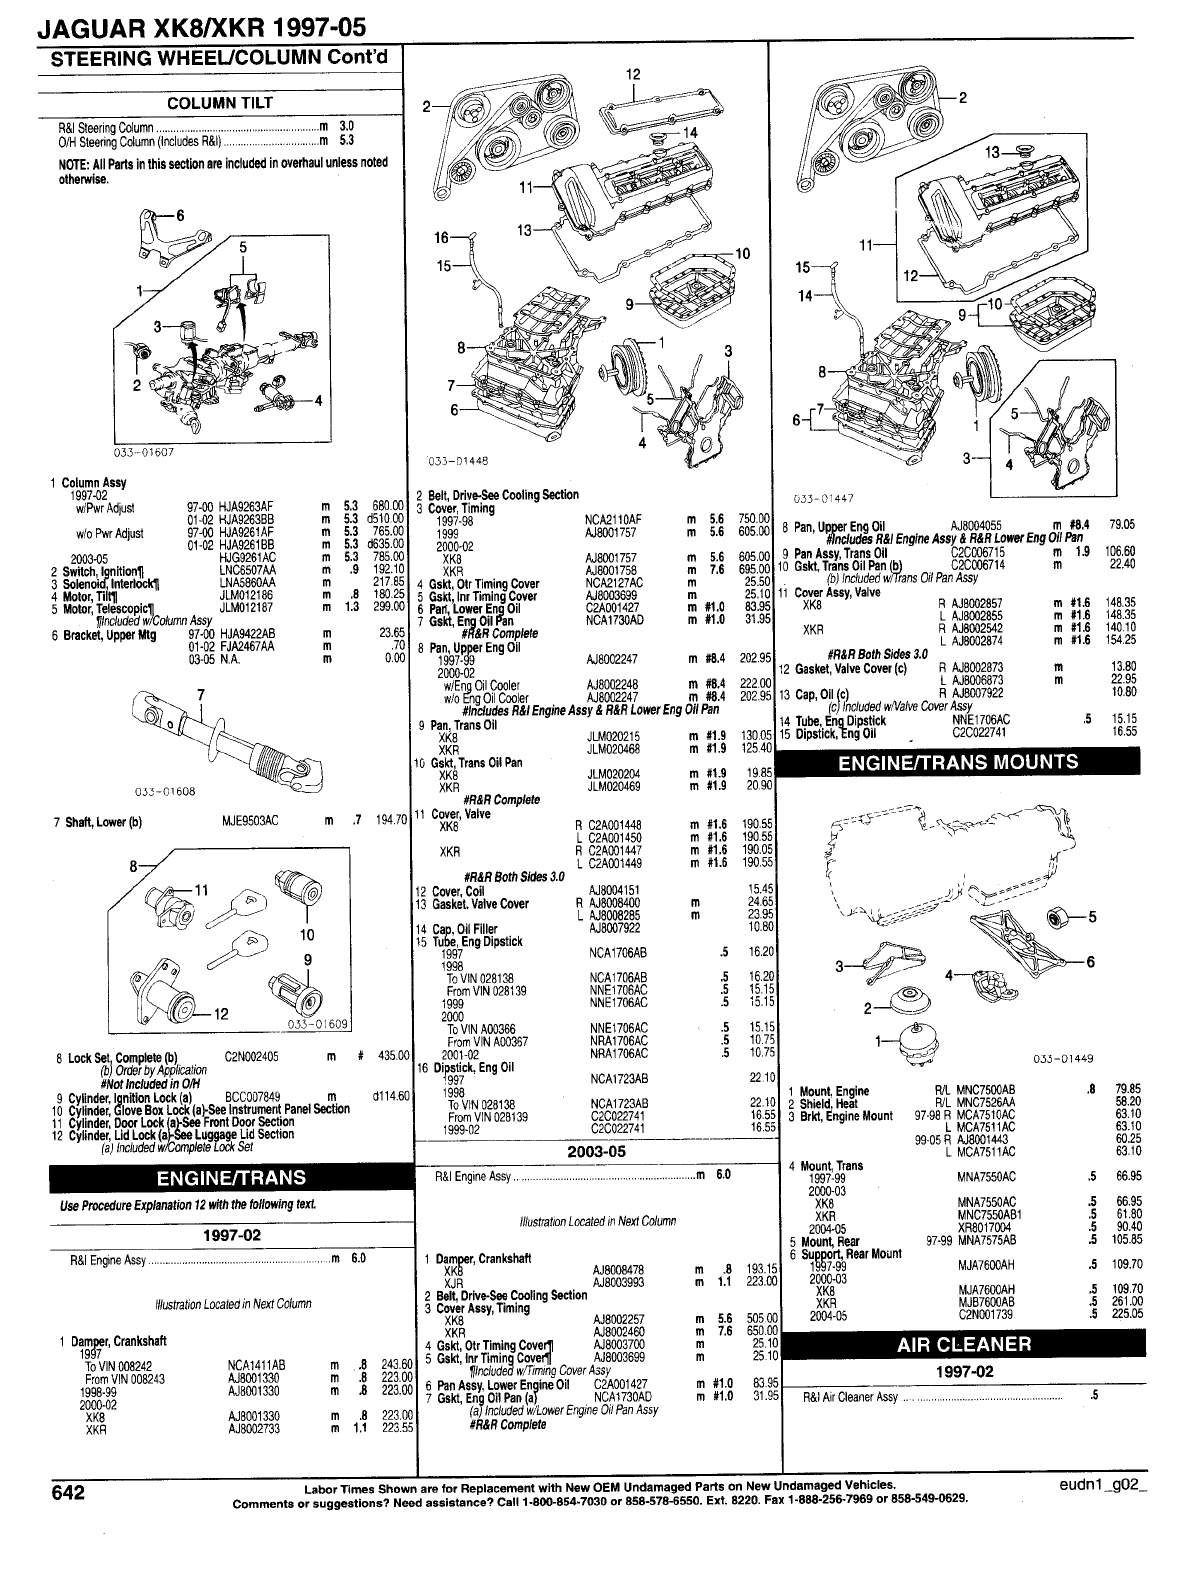 Jaguar XKR 1997 2005 Misc. Document Jaguar Parts List.PDF